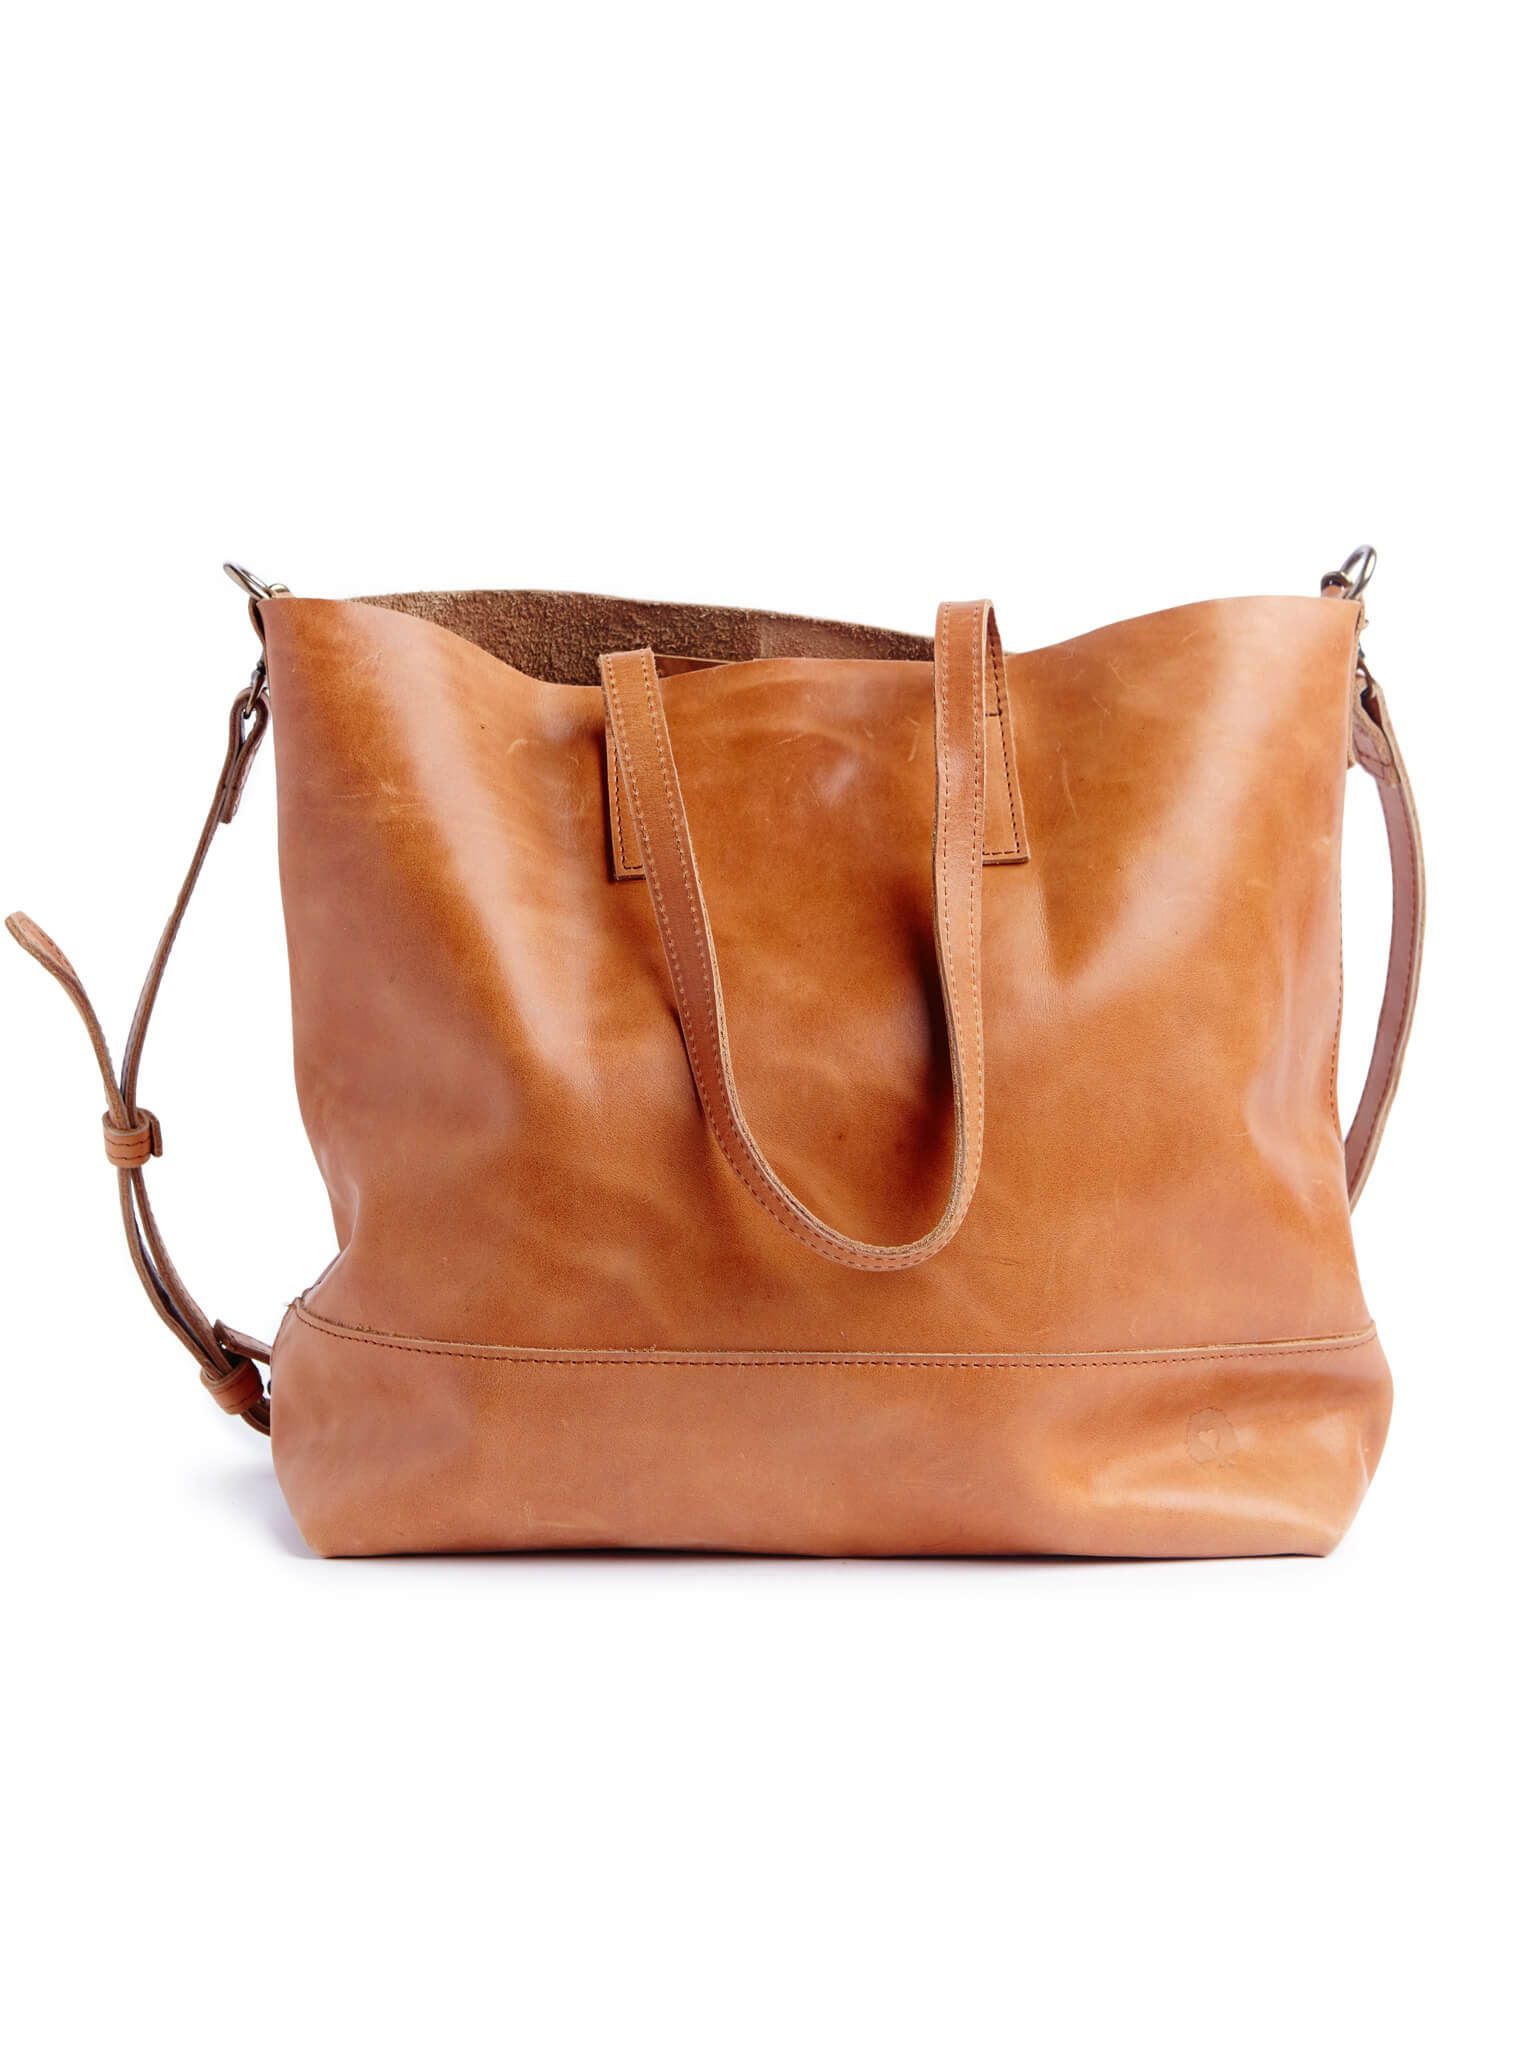 https://livefashionable.com/product/abera-crossbody-leather-tote/?utm_source=Abera Tote - Kat Lifestyle